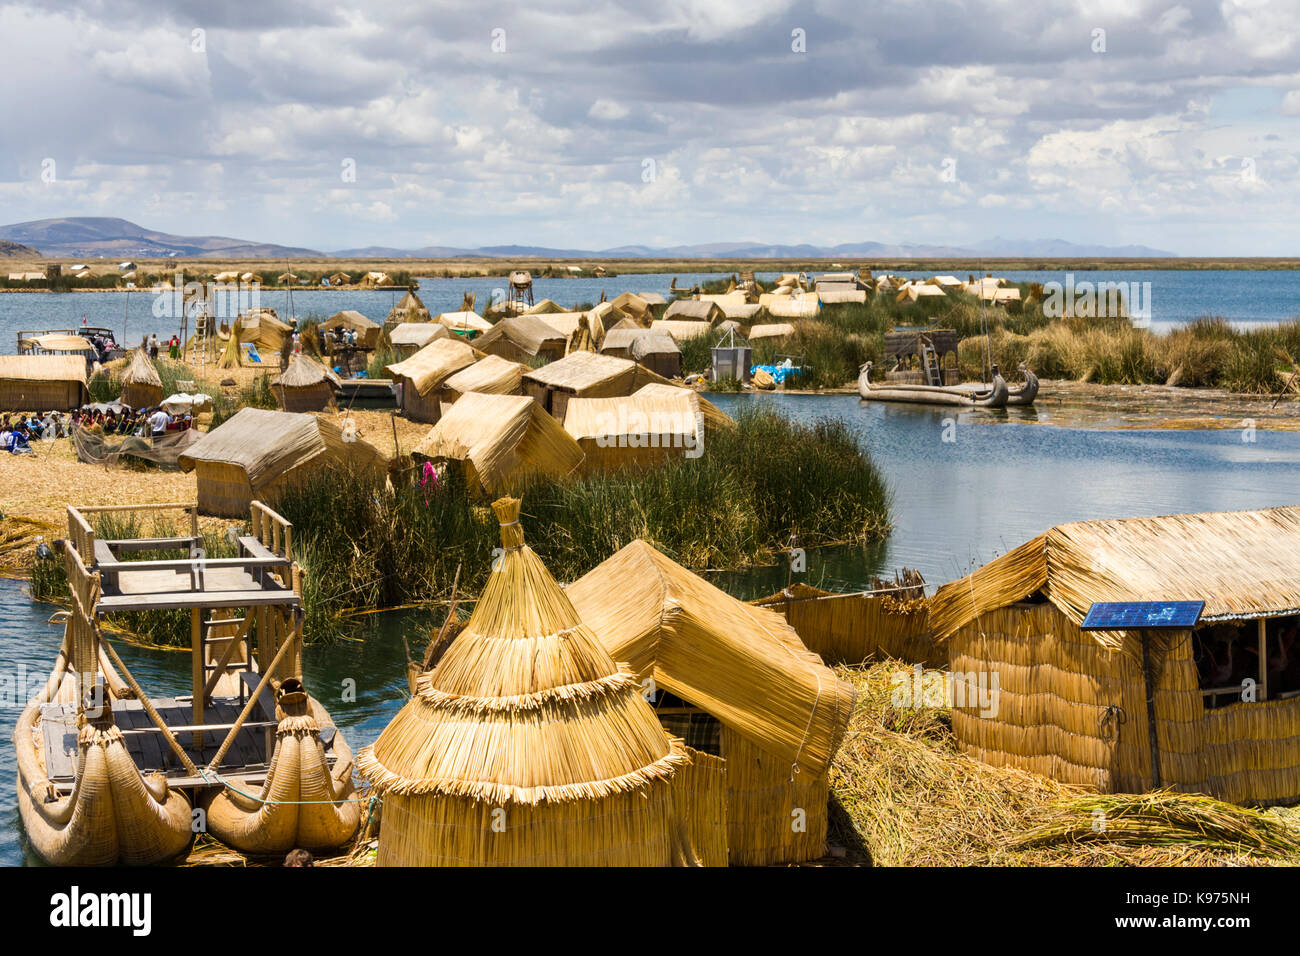 The Uros islands, reed houses and reed based islands in Lake Titikaka, Andes Highlands, Peru - Stock Image